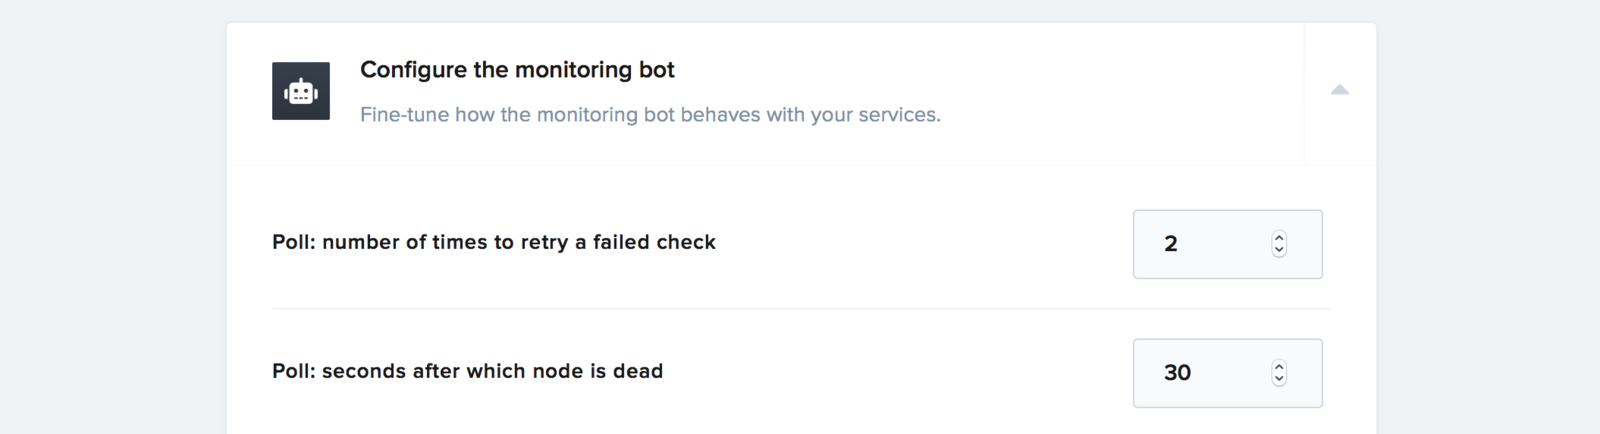 Monitoring bot options for poll mode nodes